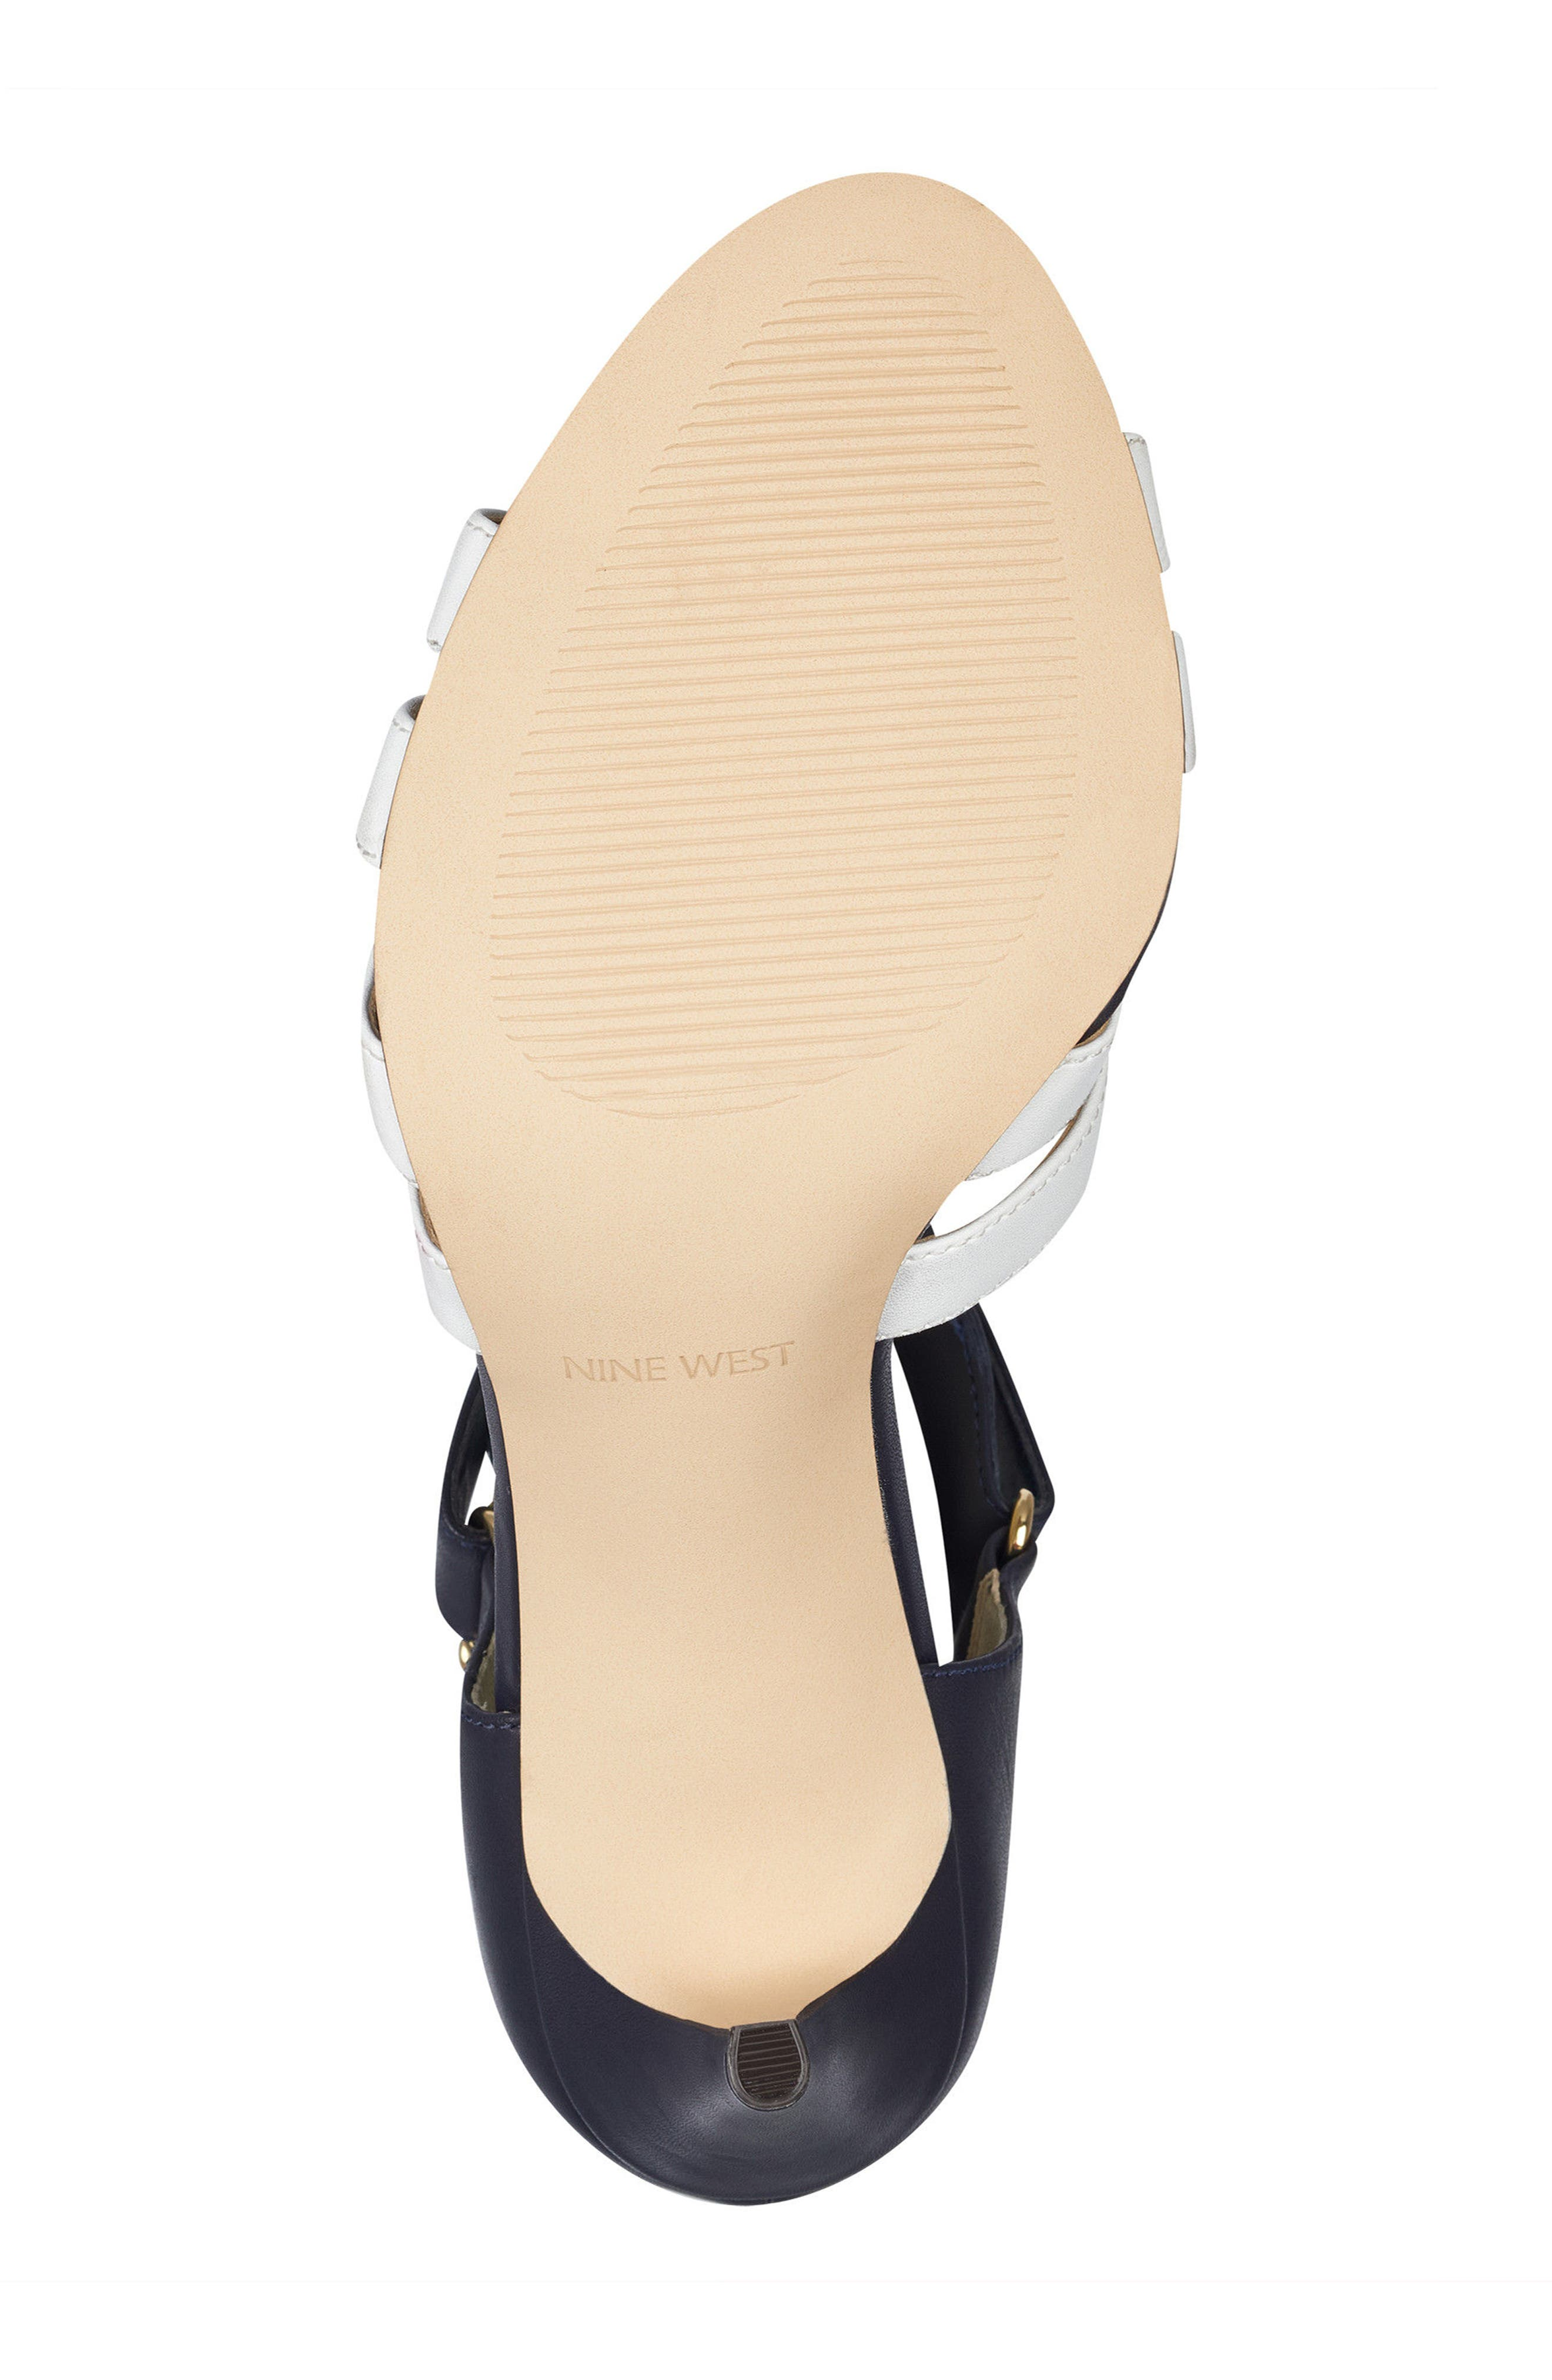 McGlynn Strappy Sandal,                             Alternate thumbnail 6, color,                             Navy/ White Leather